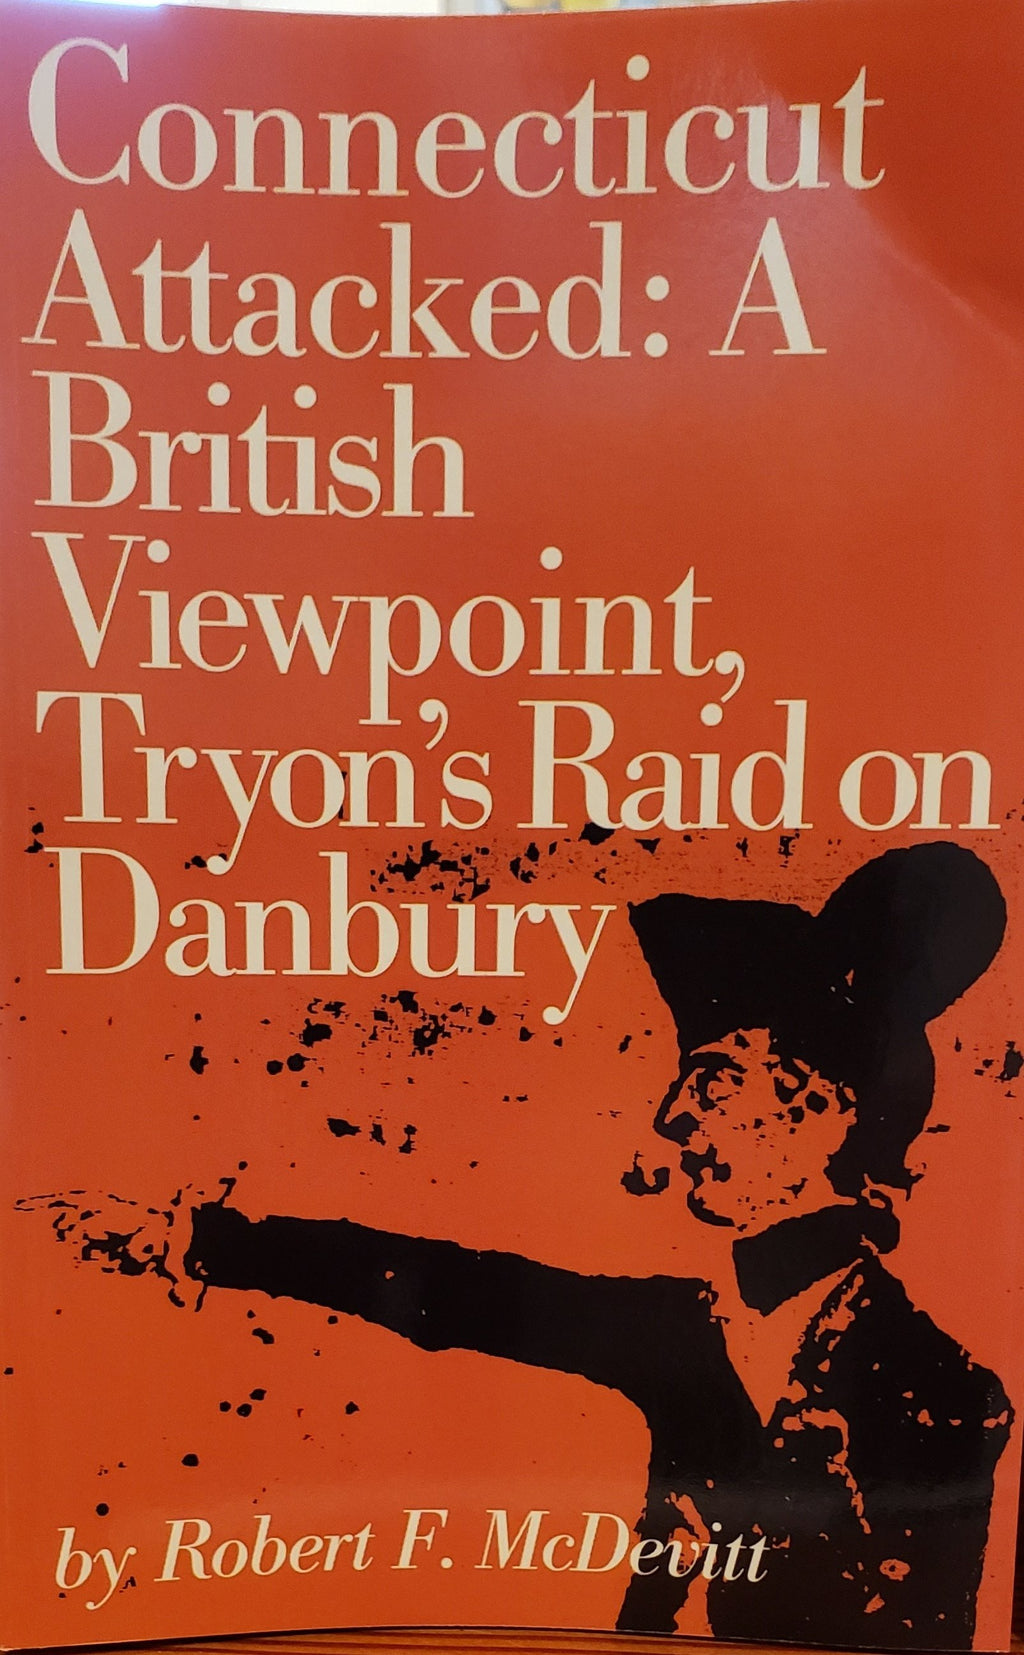 Connecticut Attacked:  by Robert F. McDevitt